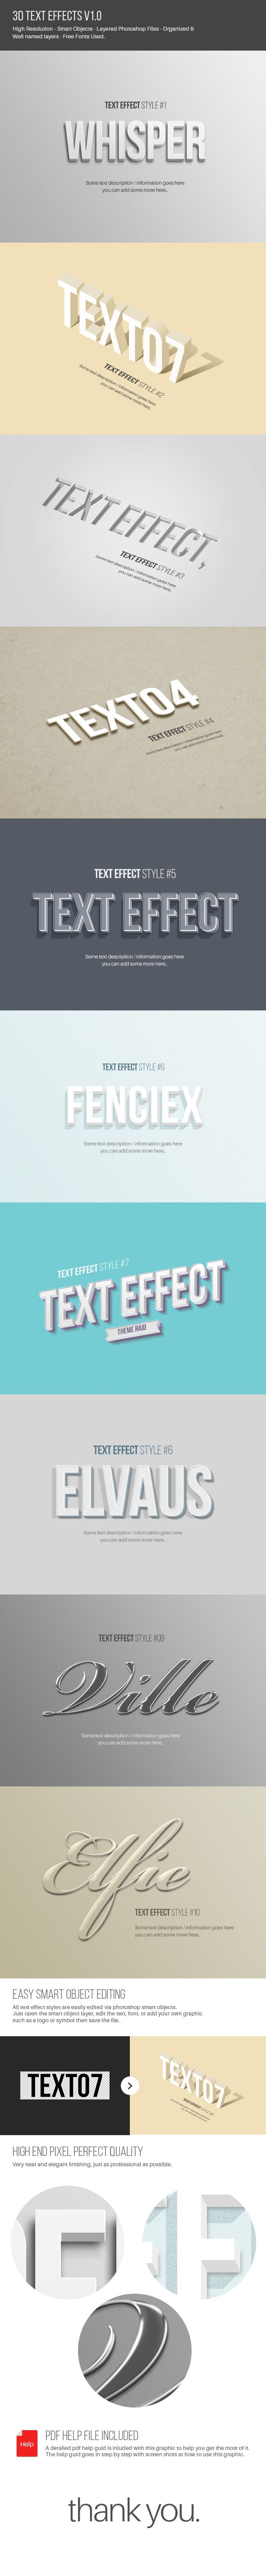 10 Text Effects for Photoshop. Download here: http://graphicriver.net/item/text-effects-v10/10530426?ref=ksioks